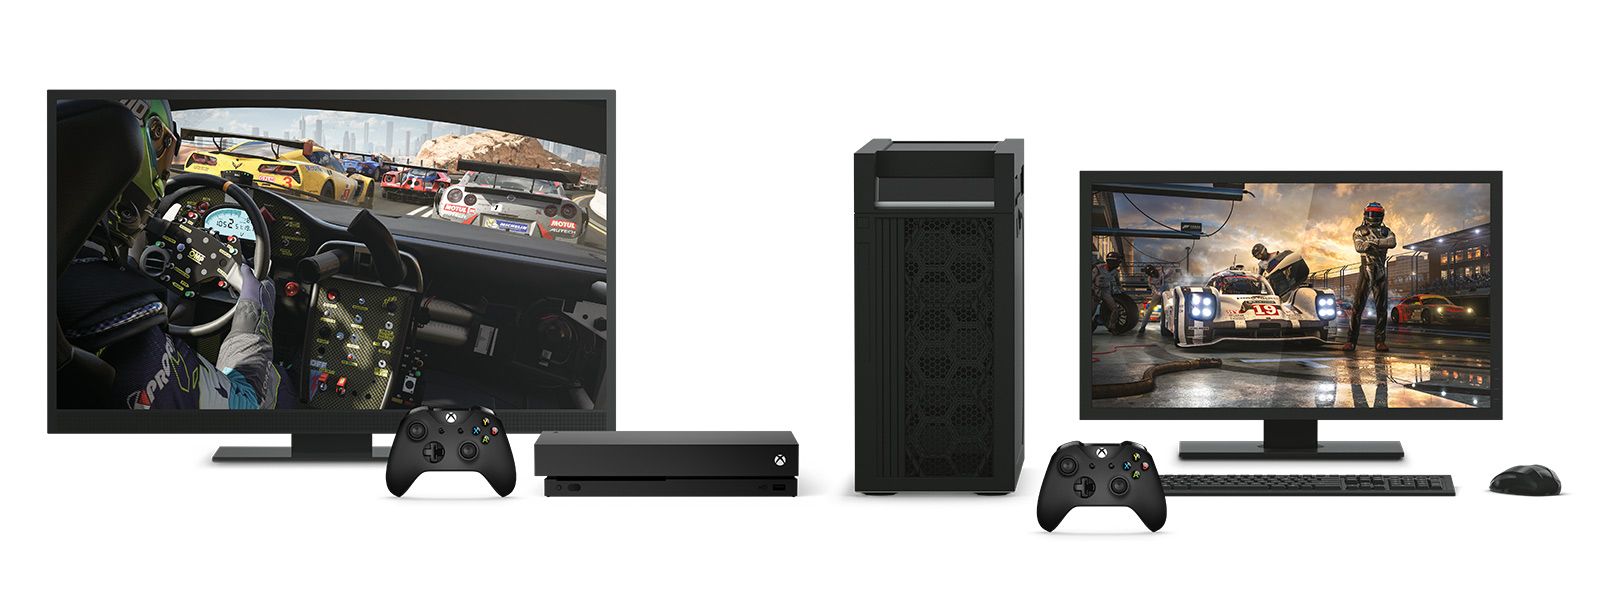 Xbox One X and a 4K Desktop device with Forza Motorsport 7 on a TV and a Computer screen